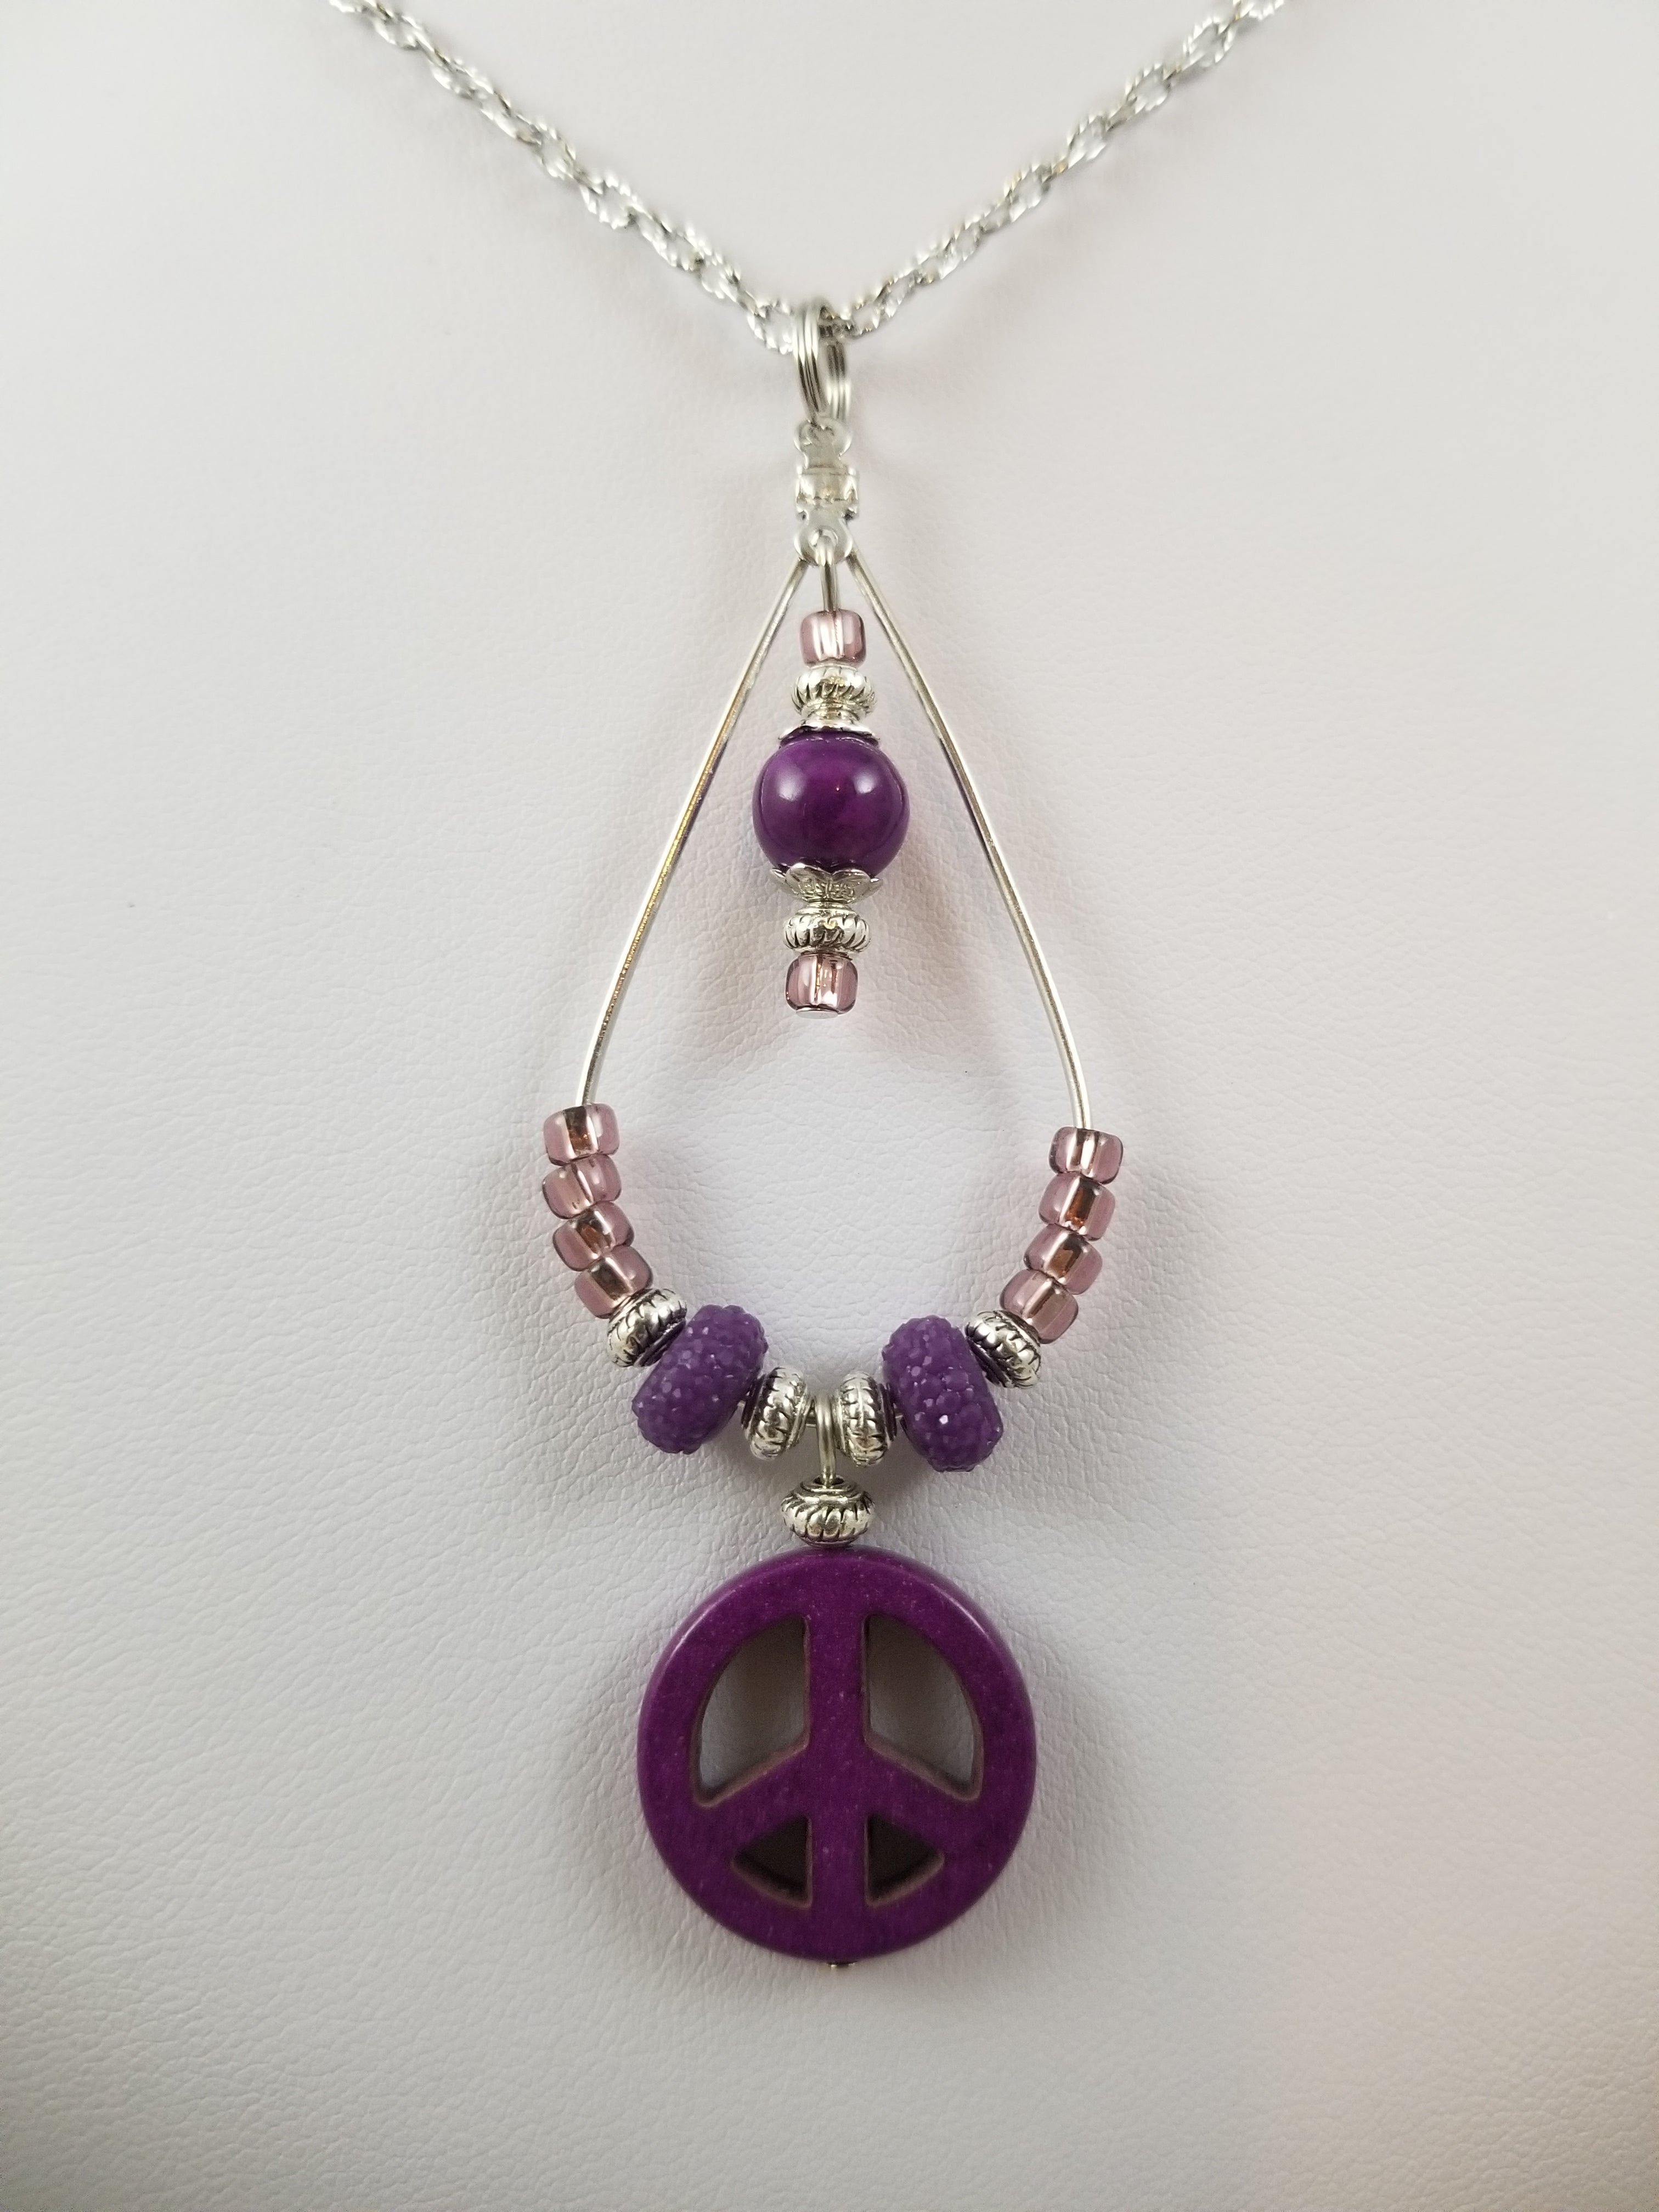 Peaceful Simply Charming Necklace